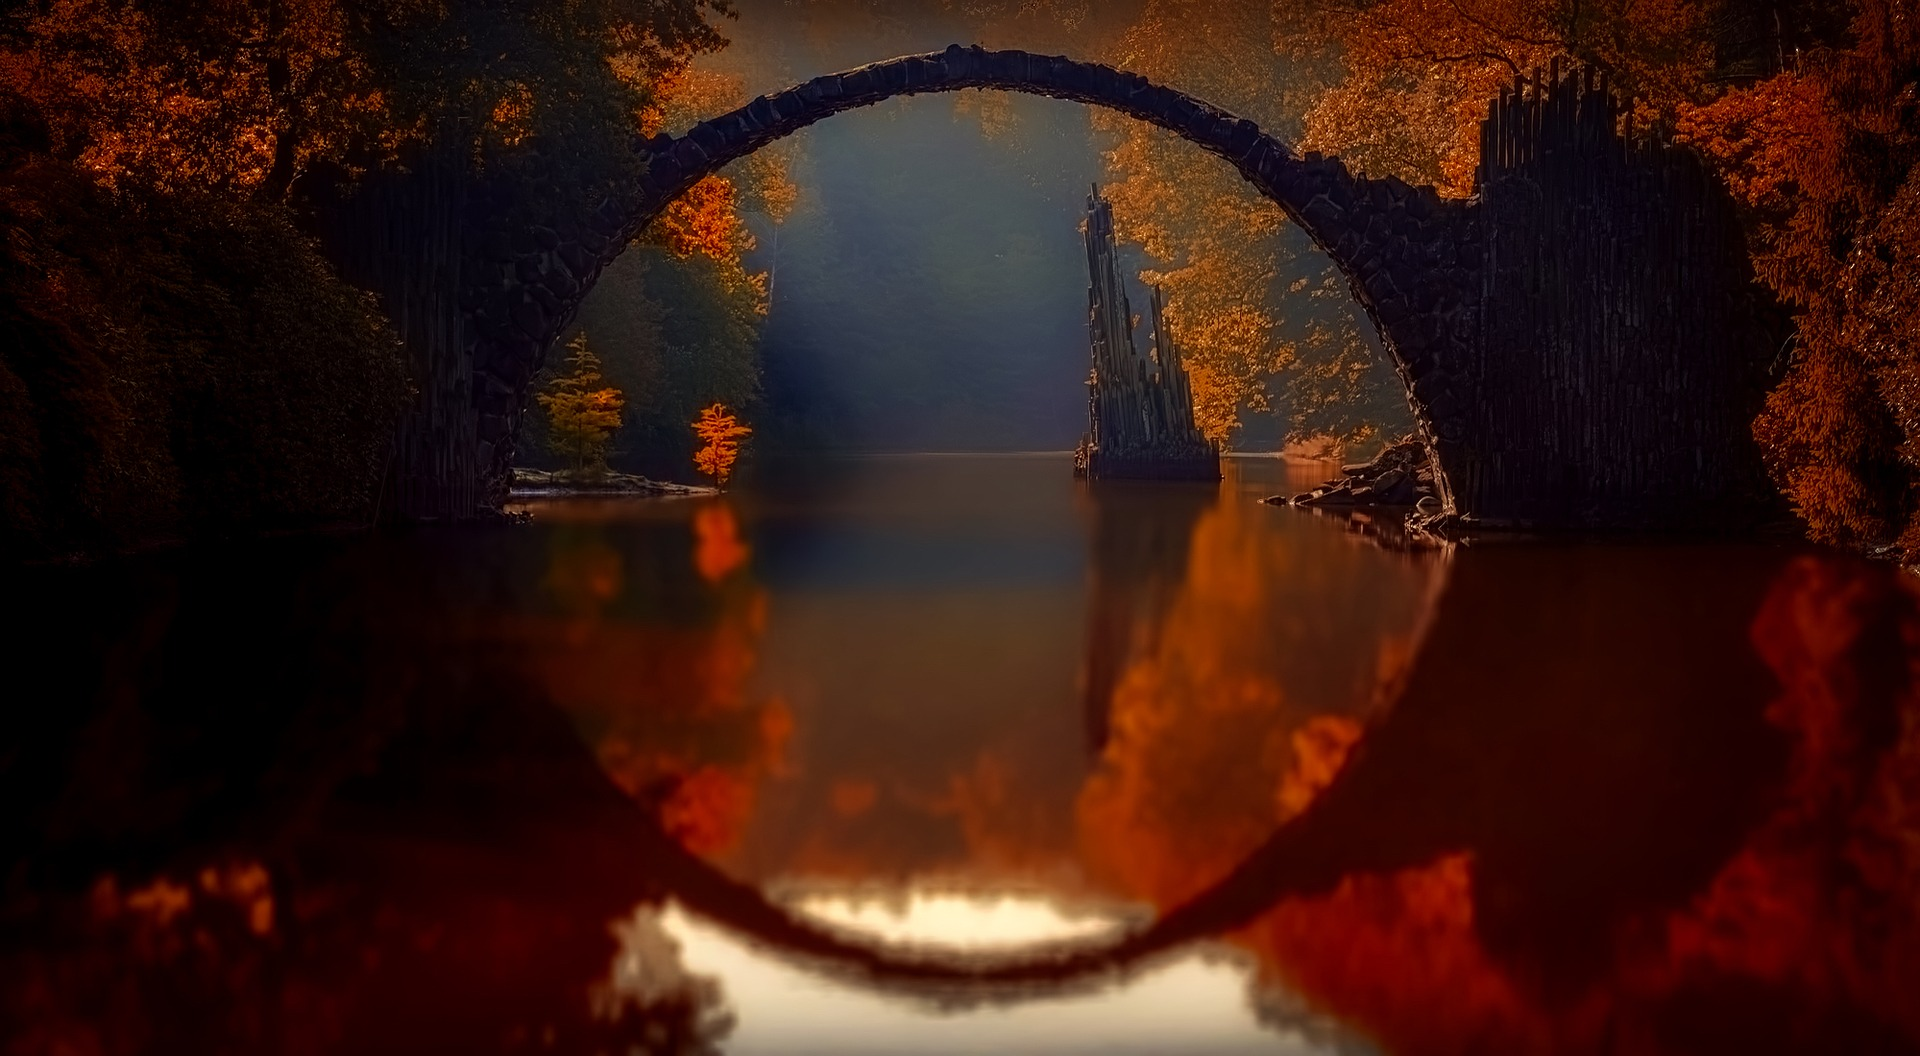 beautiful photo of bridge over calm water perfect reflection autumn